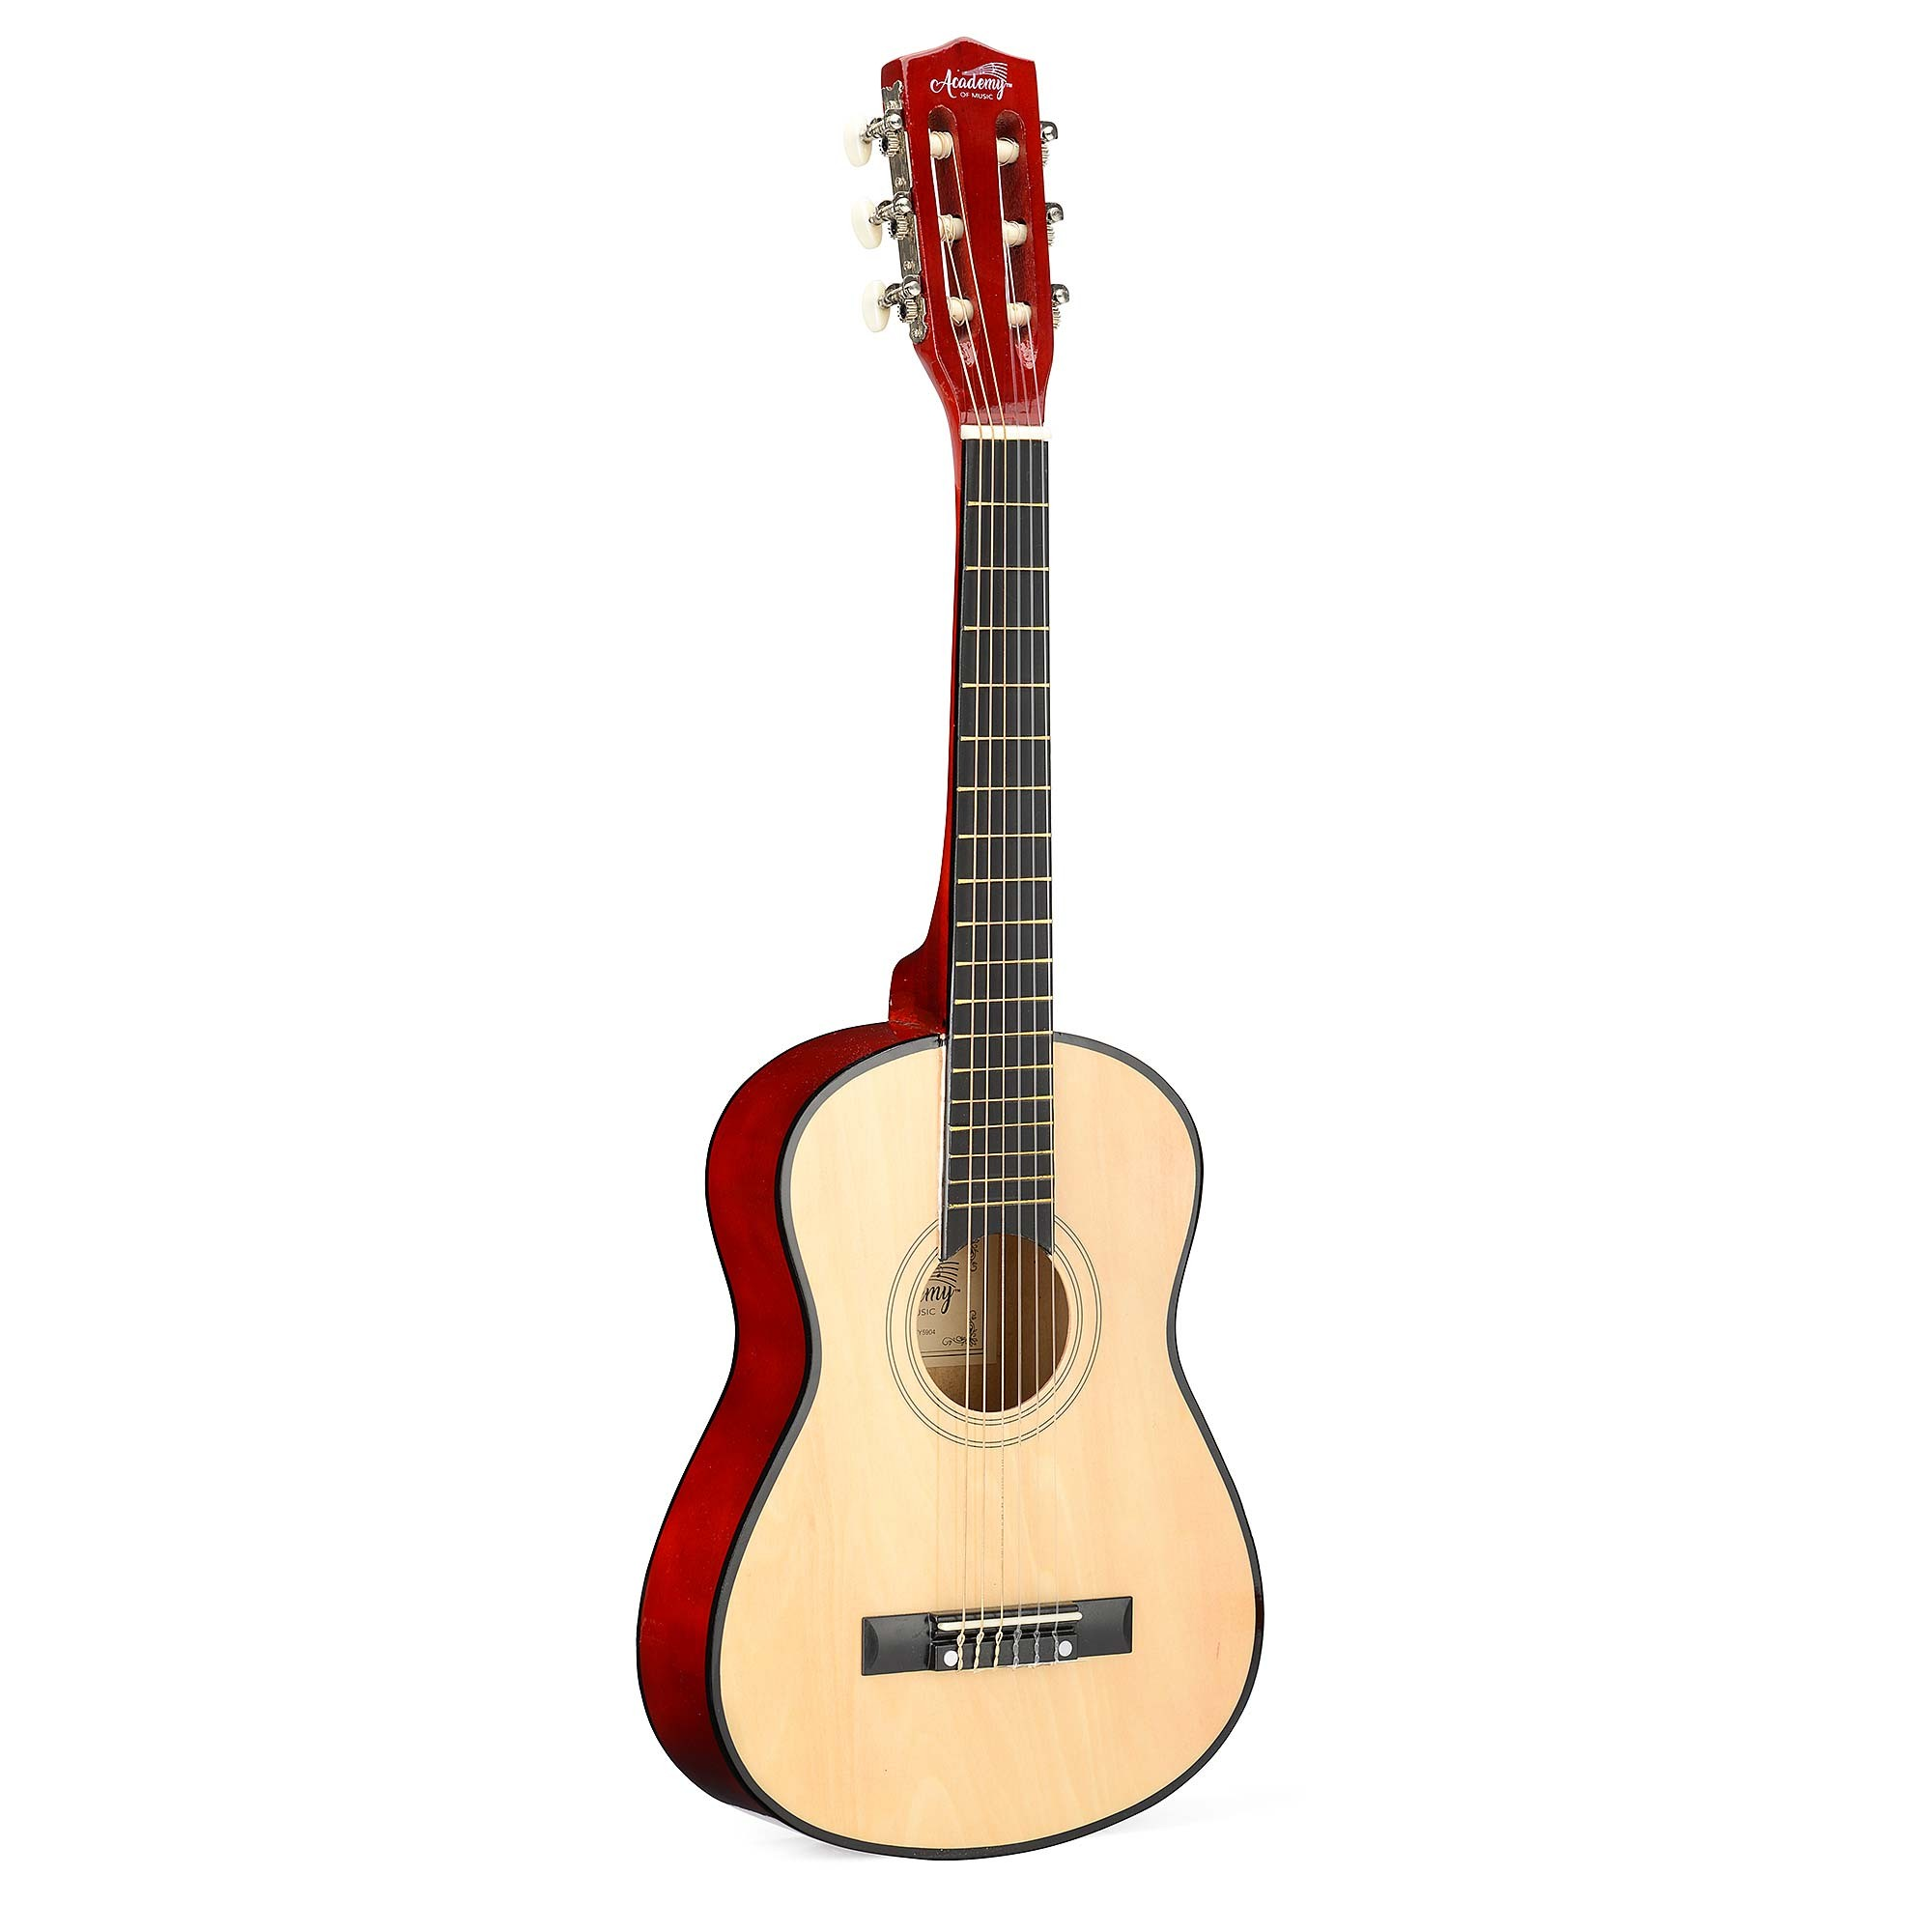 Academy Of Music 30in Acoustic Guitar